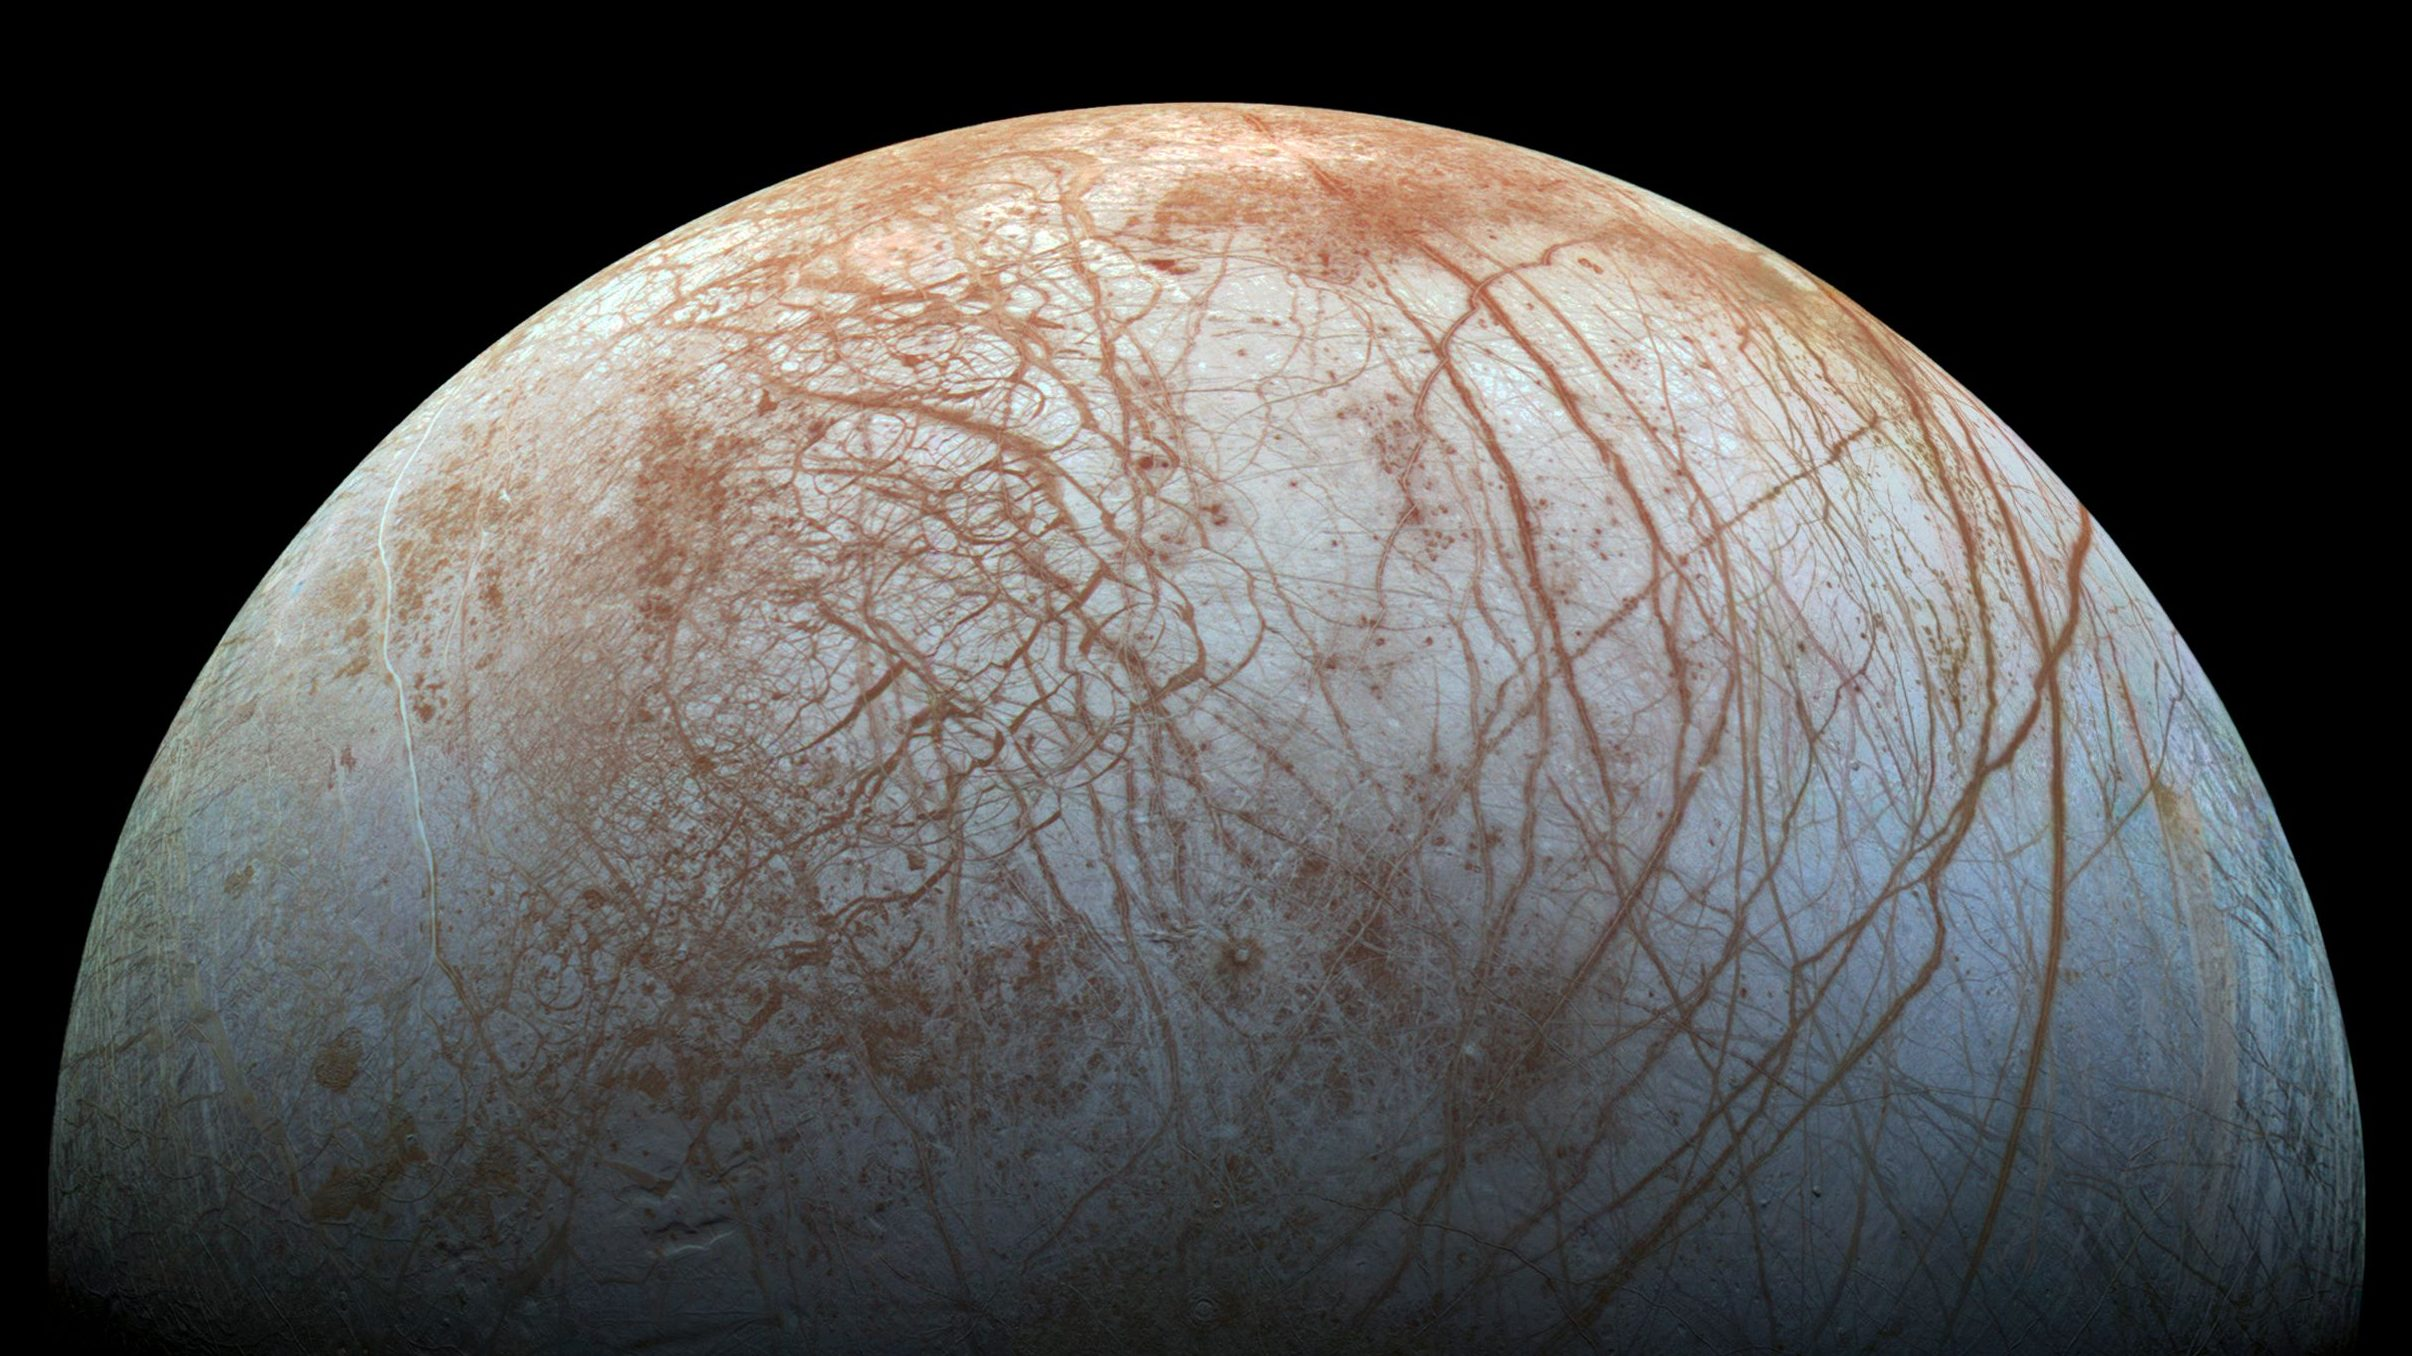 A new mosaic made from images taken by NASA's Galileo spacecraft in the late 1990's is shown of the surface of Jupiter's icy moon, Europa, as it looms large in this newly-reprocessed, higher resolution color view in this handout provided by NASA November 24, 2014. This newer version was created from images assembled into a realistic color view of the surface that approximates how Europa would appear to the human eye.